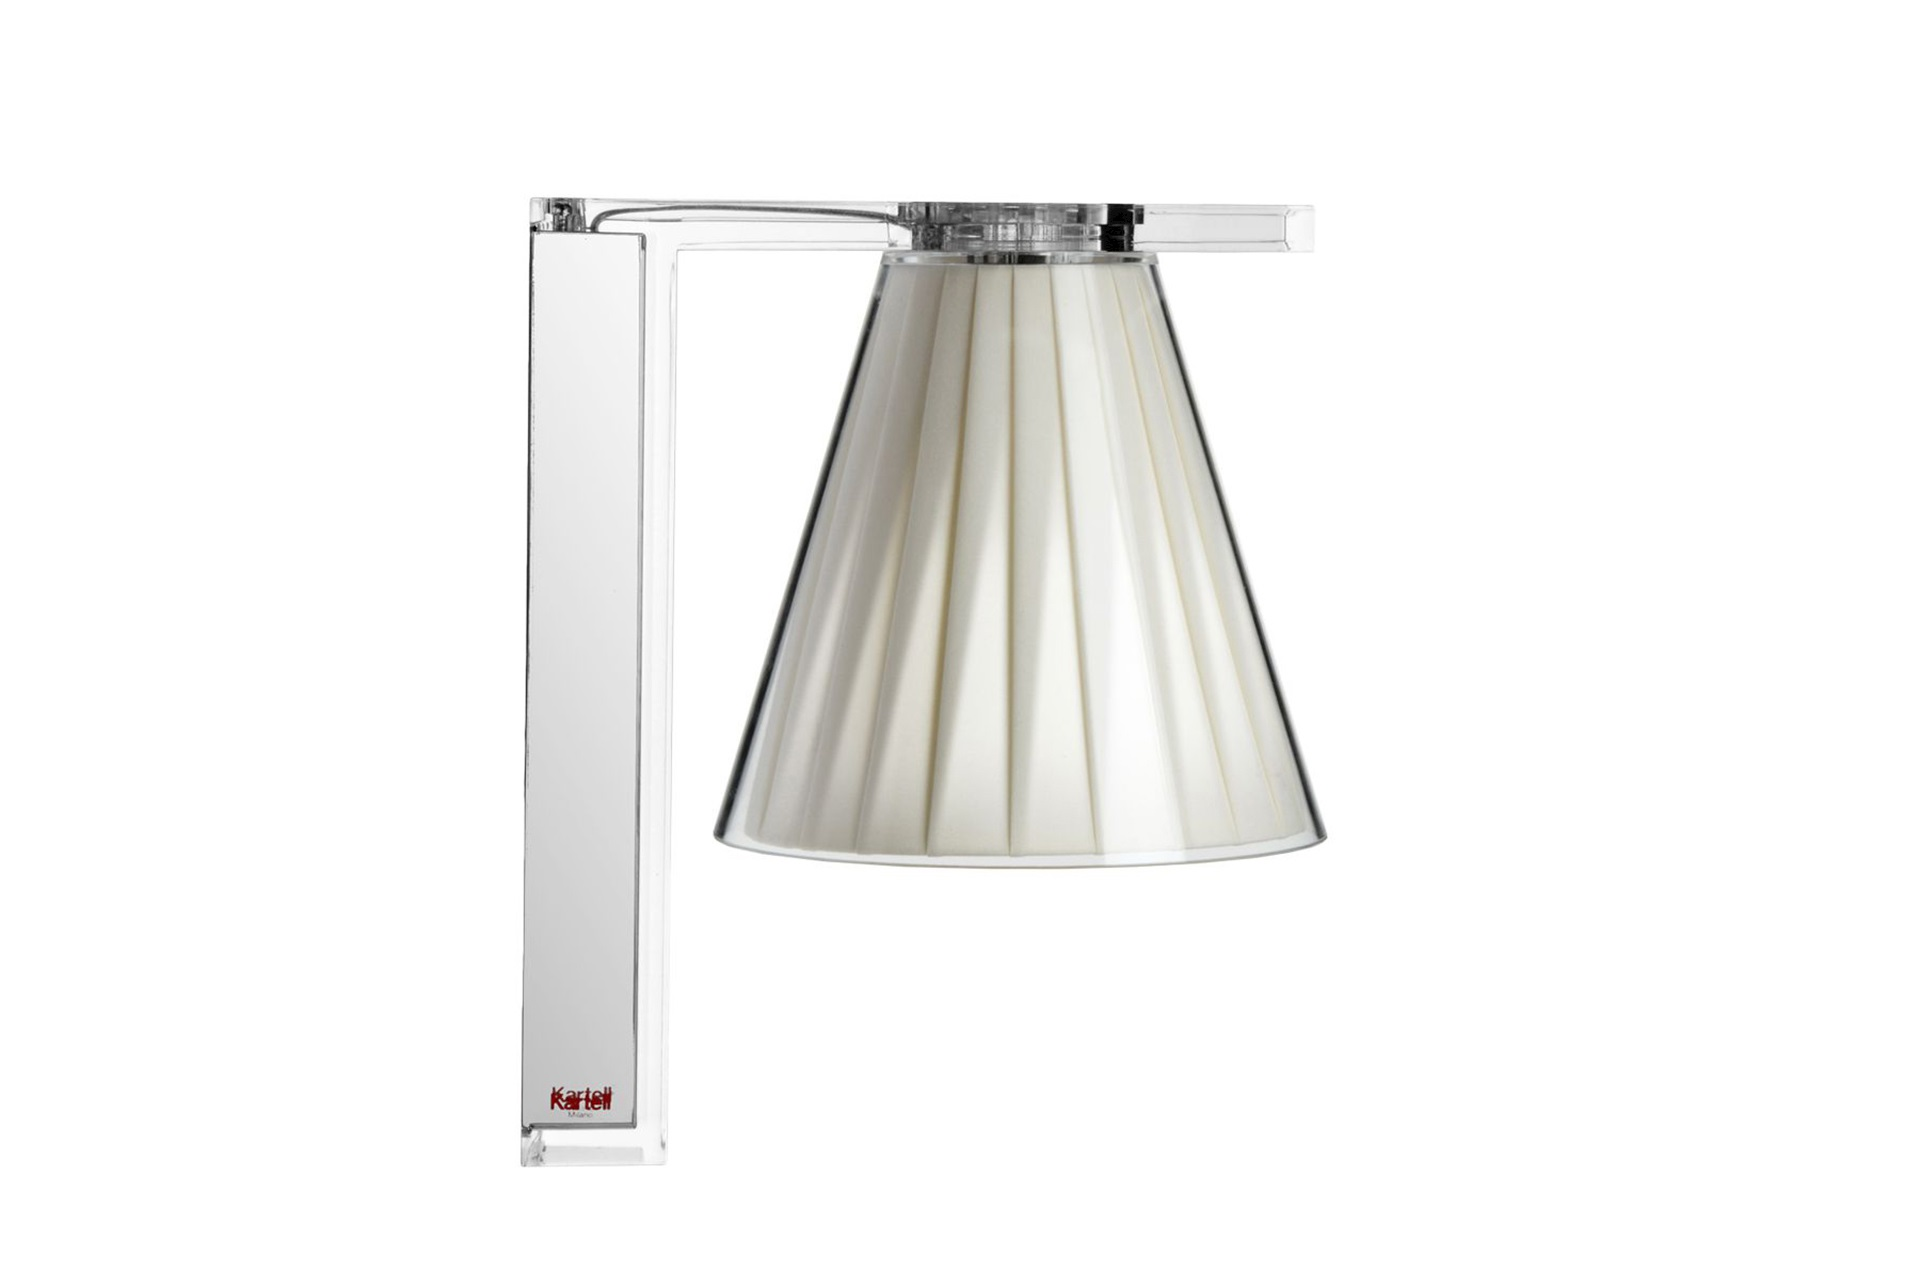 Kartell lampada applique light air beige acquista su zanolli